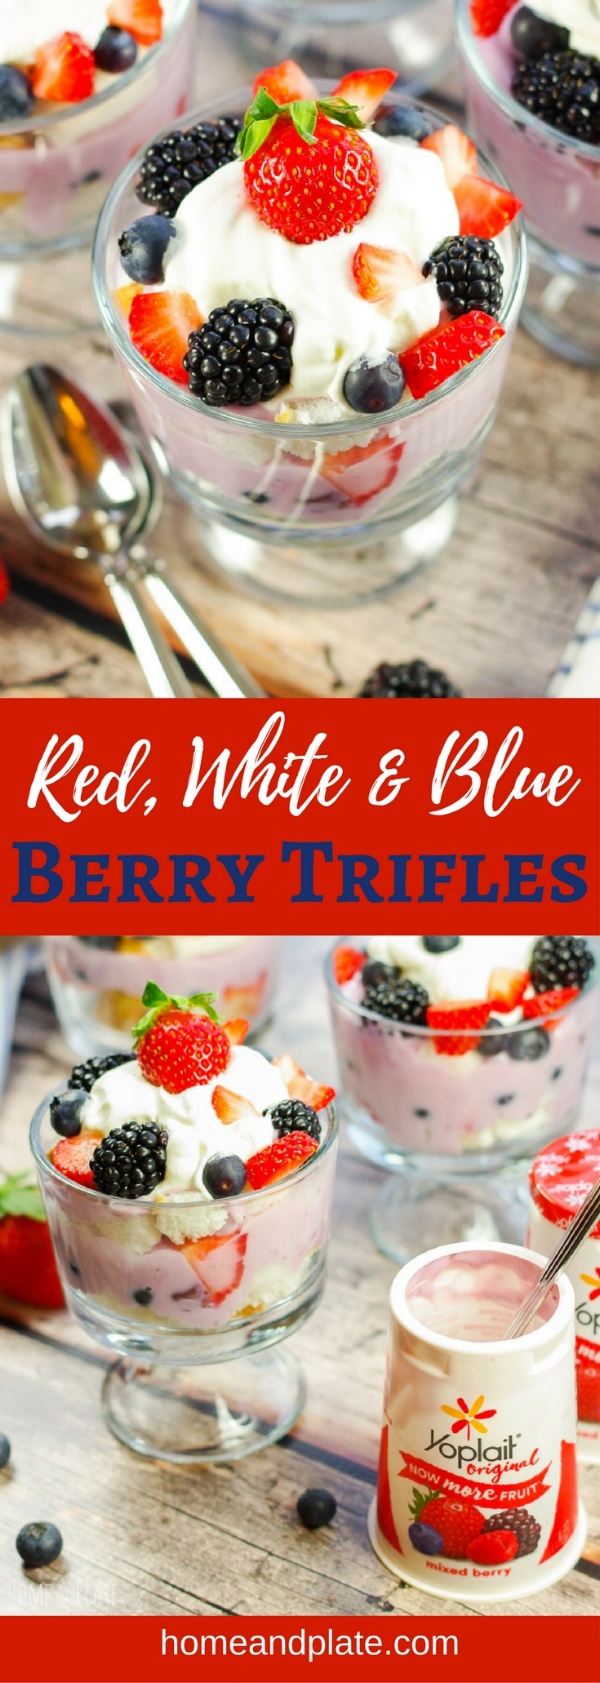 #ad | Red, White & Blue Trifle | This easy no-bake layered trifle is made with mixed berry yogurt, fresh fruit and angel food cake. Enjoy a dessert that is creamy, light and sweet any time of year. | www.homeandplate.com | @yoplait